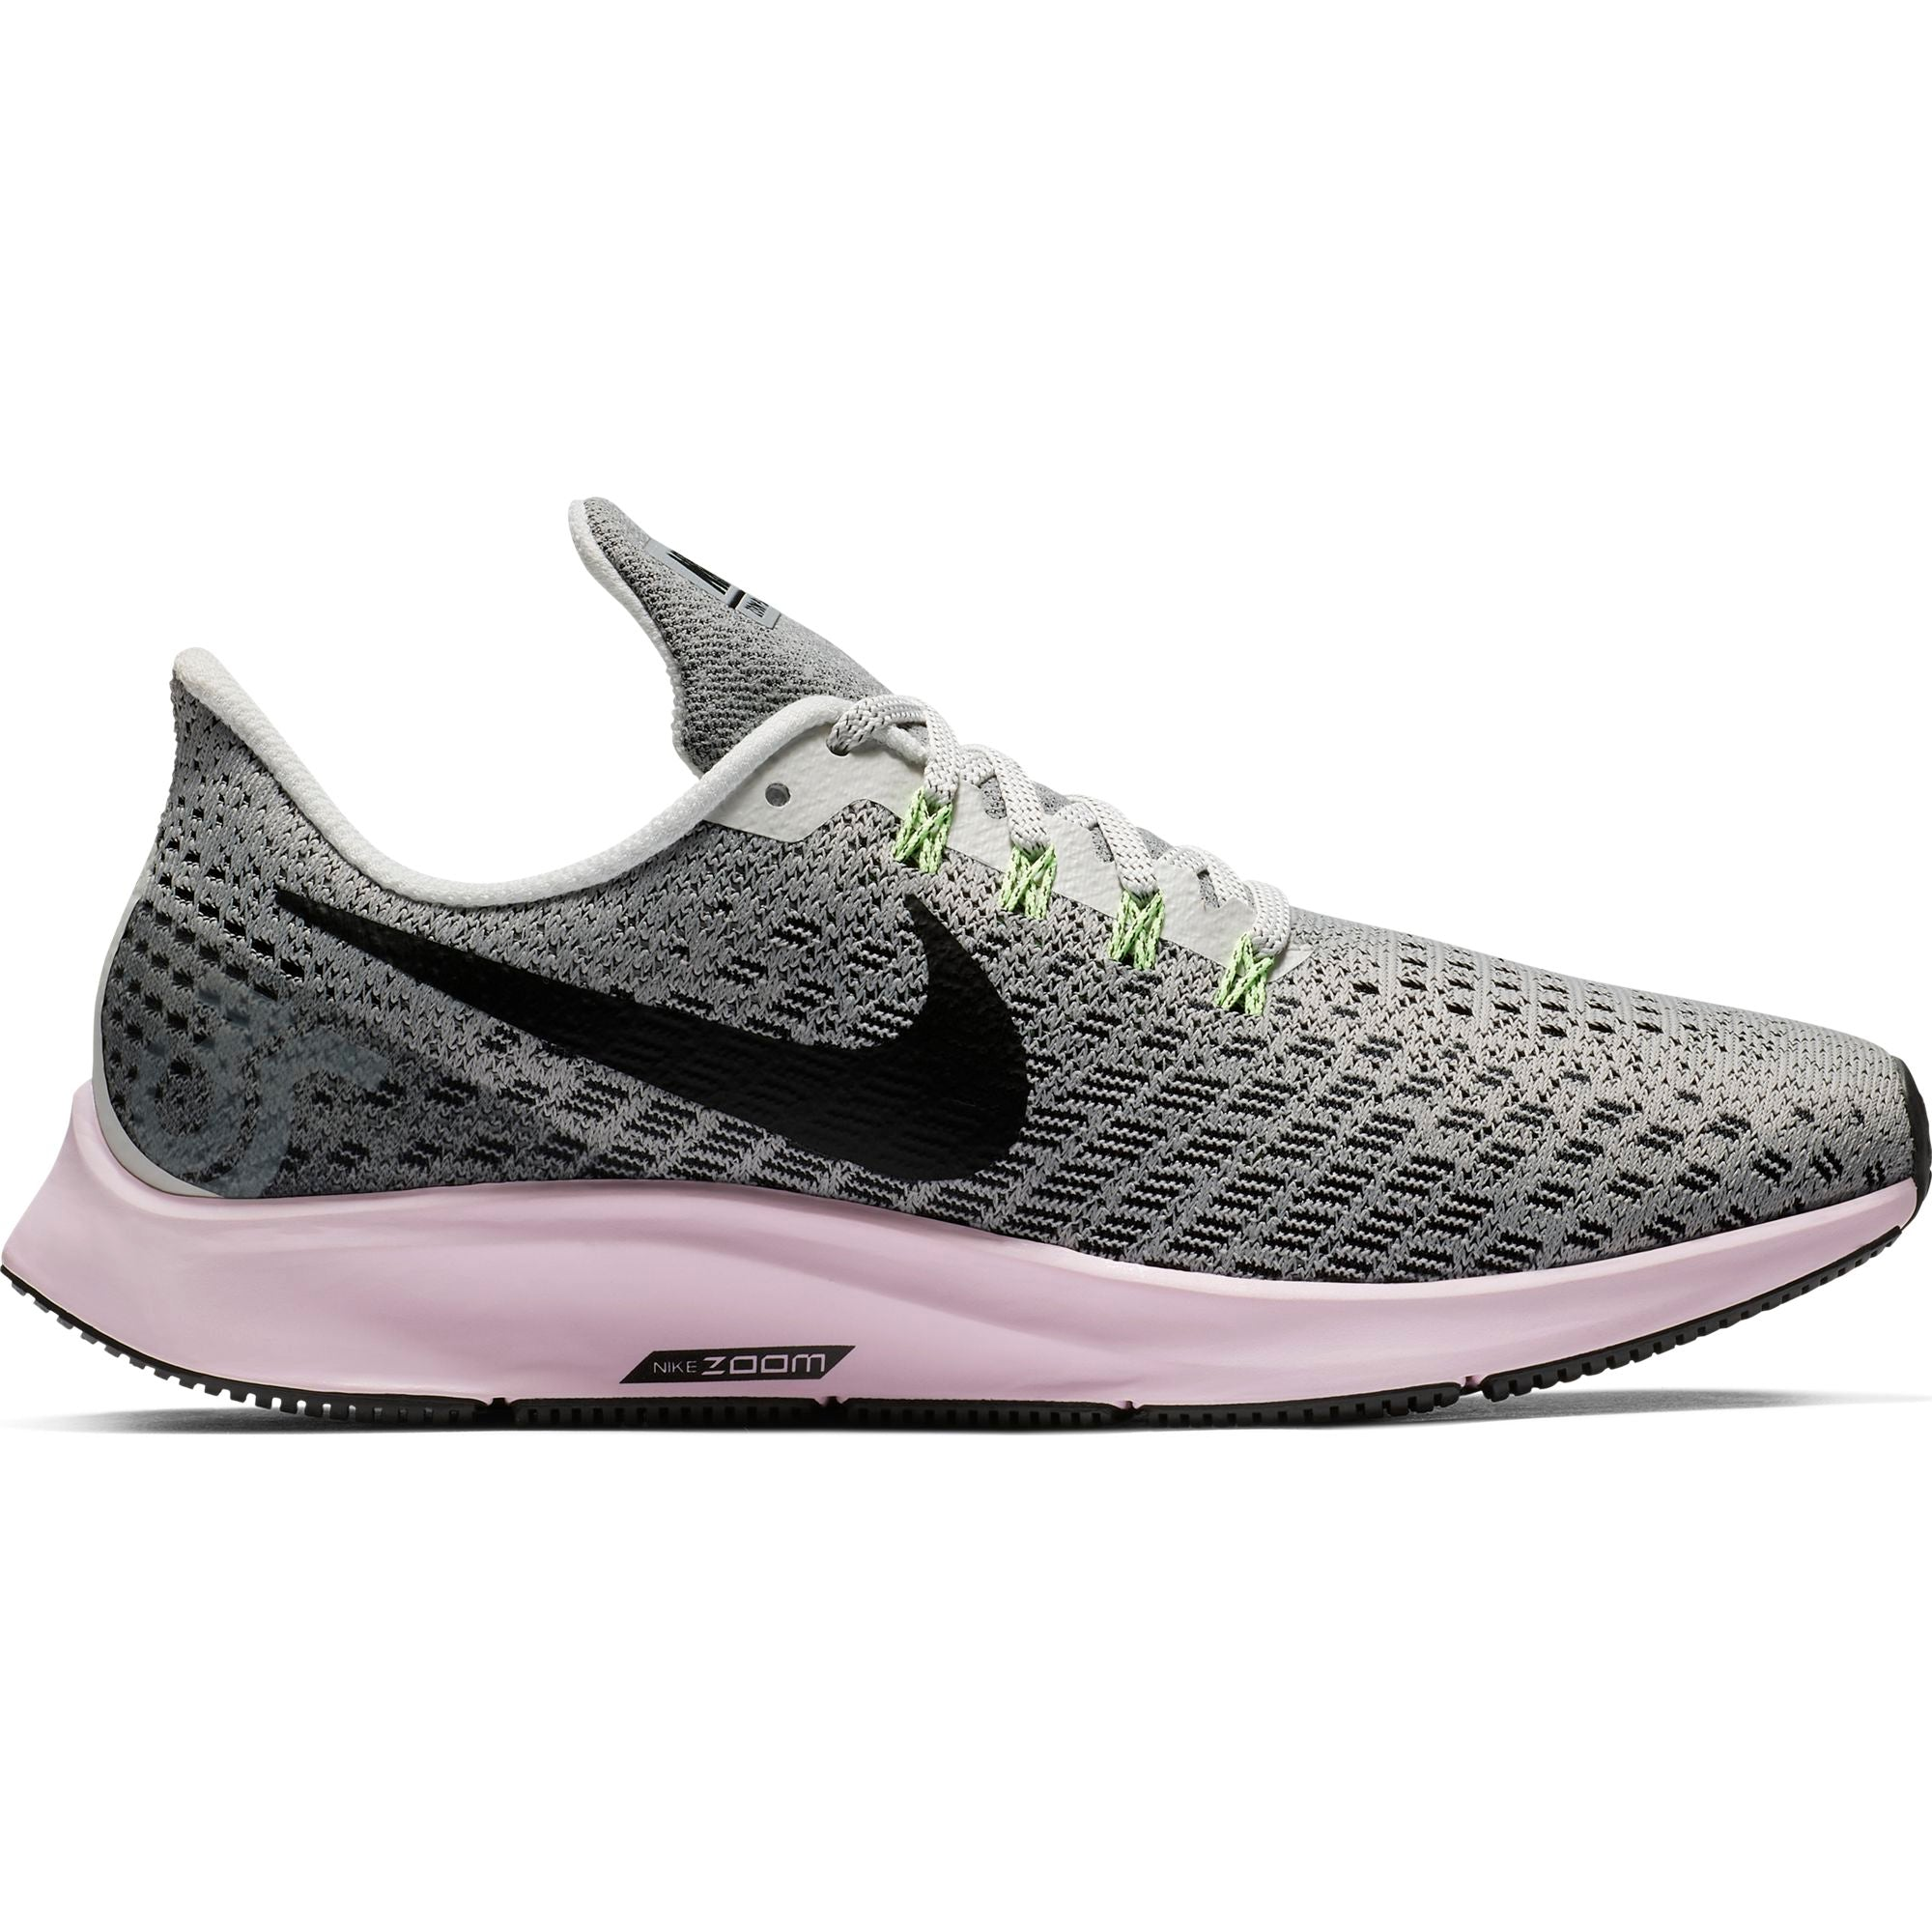 4a410953a2cb5 Women s Air Zoom Pegasus 35 Running Shoes - Vast Grey Black Pink Foam  – Gazelle  Sports